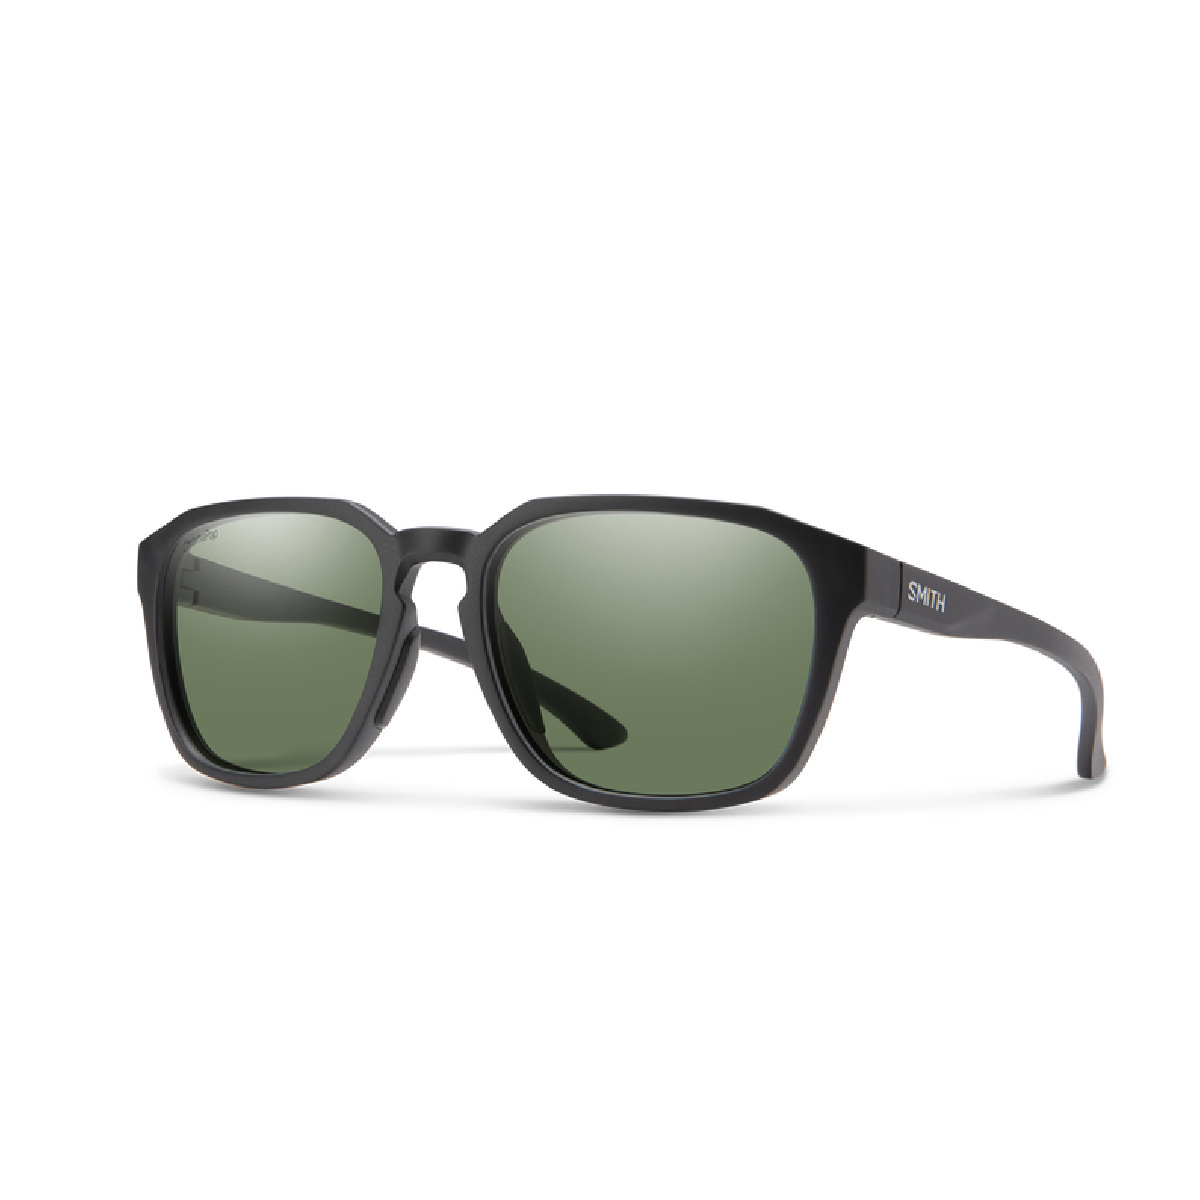 Smith Smith Contour Matte Black ChromoPop Grey Lens